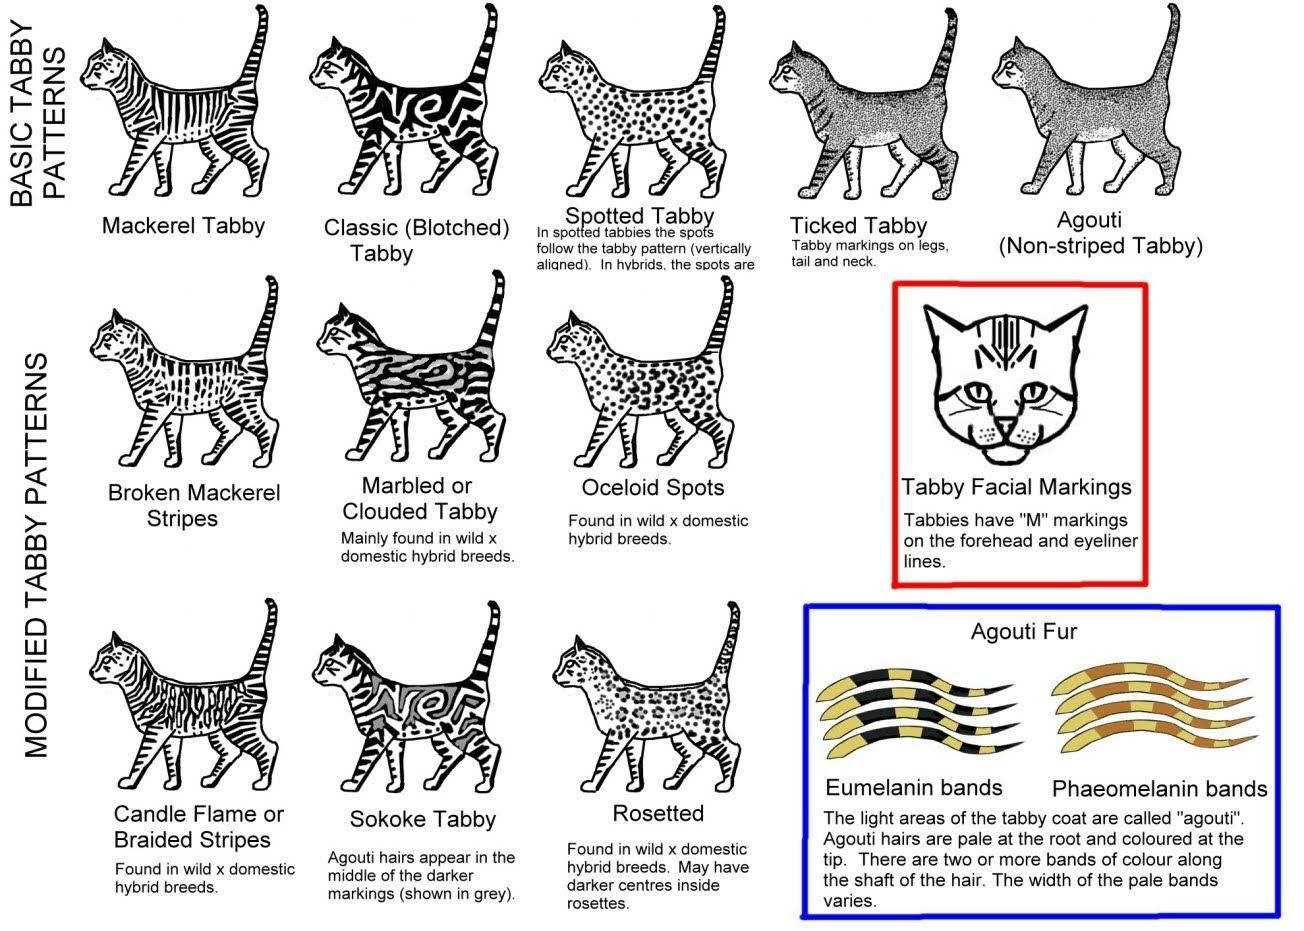 Types Of Cat Patterns Google Search Tabby Cat Silver Tabby Cat Bengal Cat